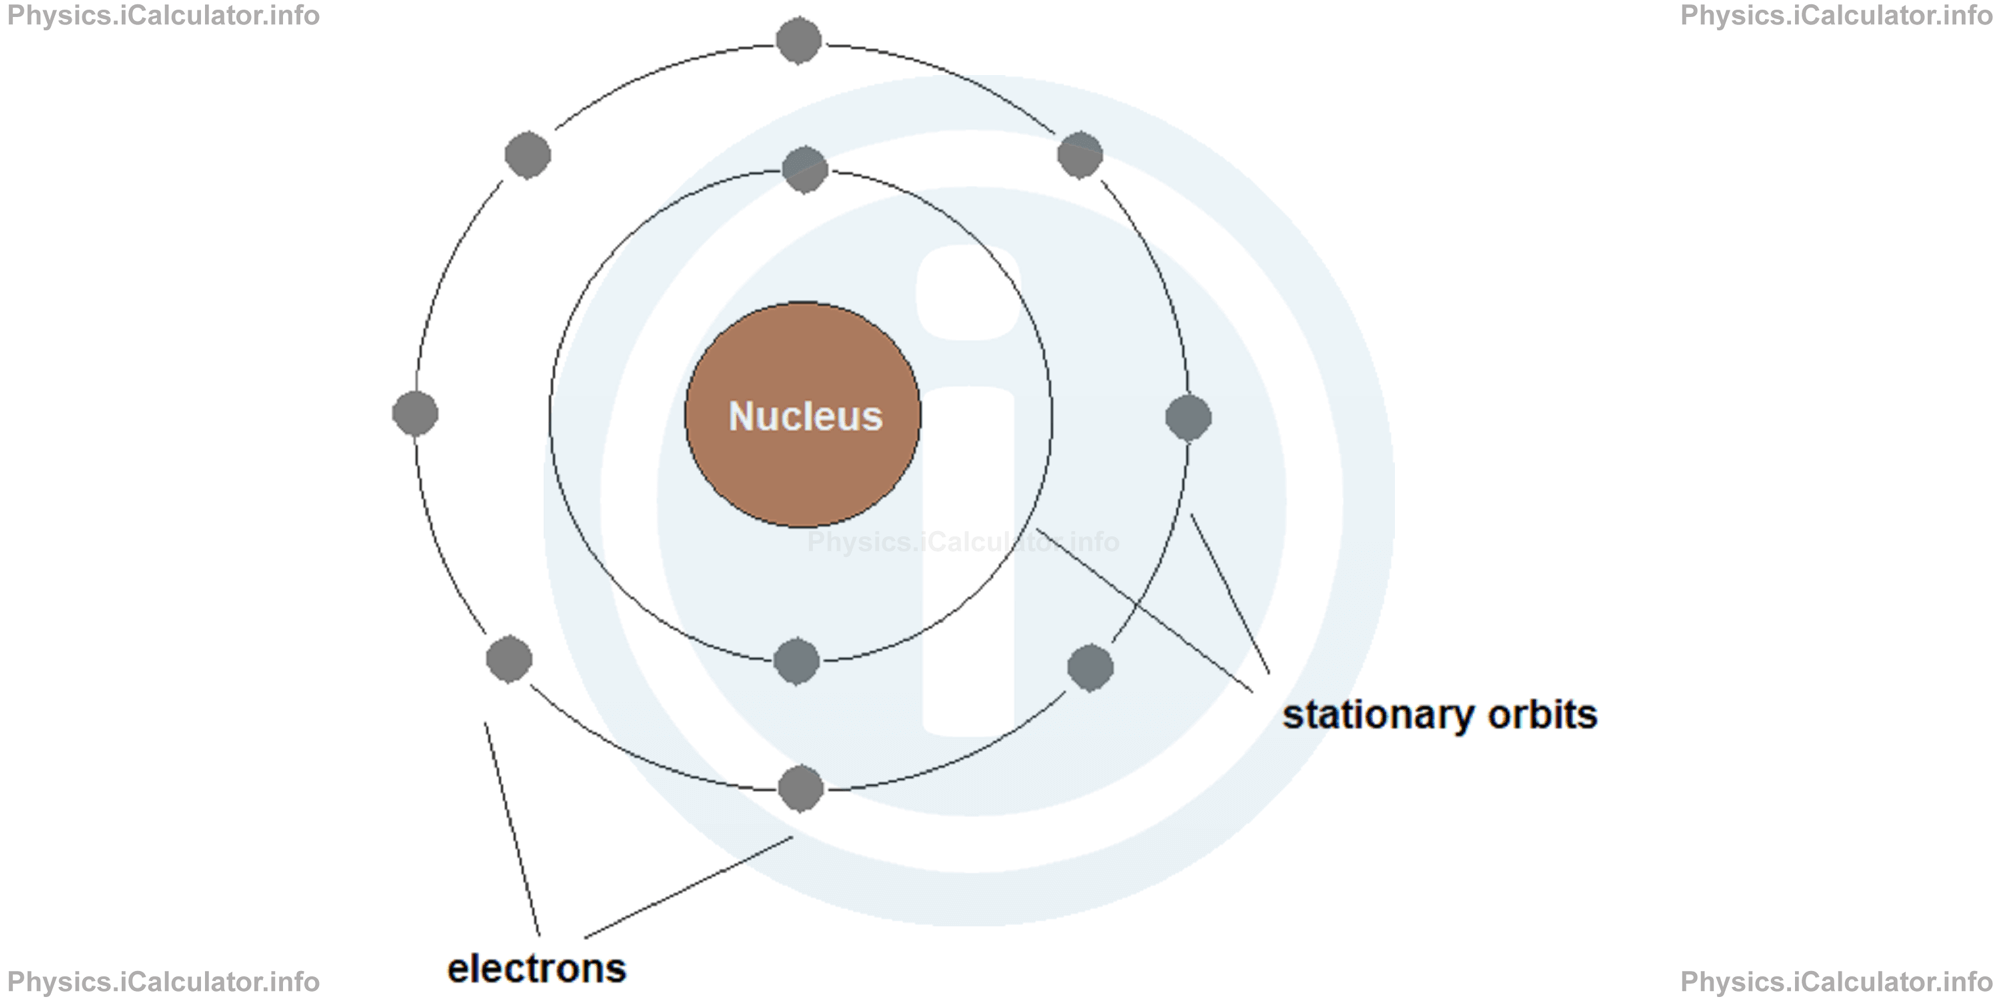 Physics Tutorials: This image provides visual information for the physics tutorial Atomic Nucleus and Its Structural Properties